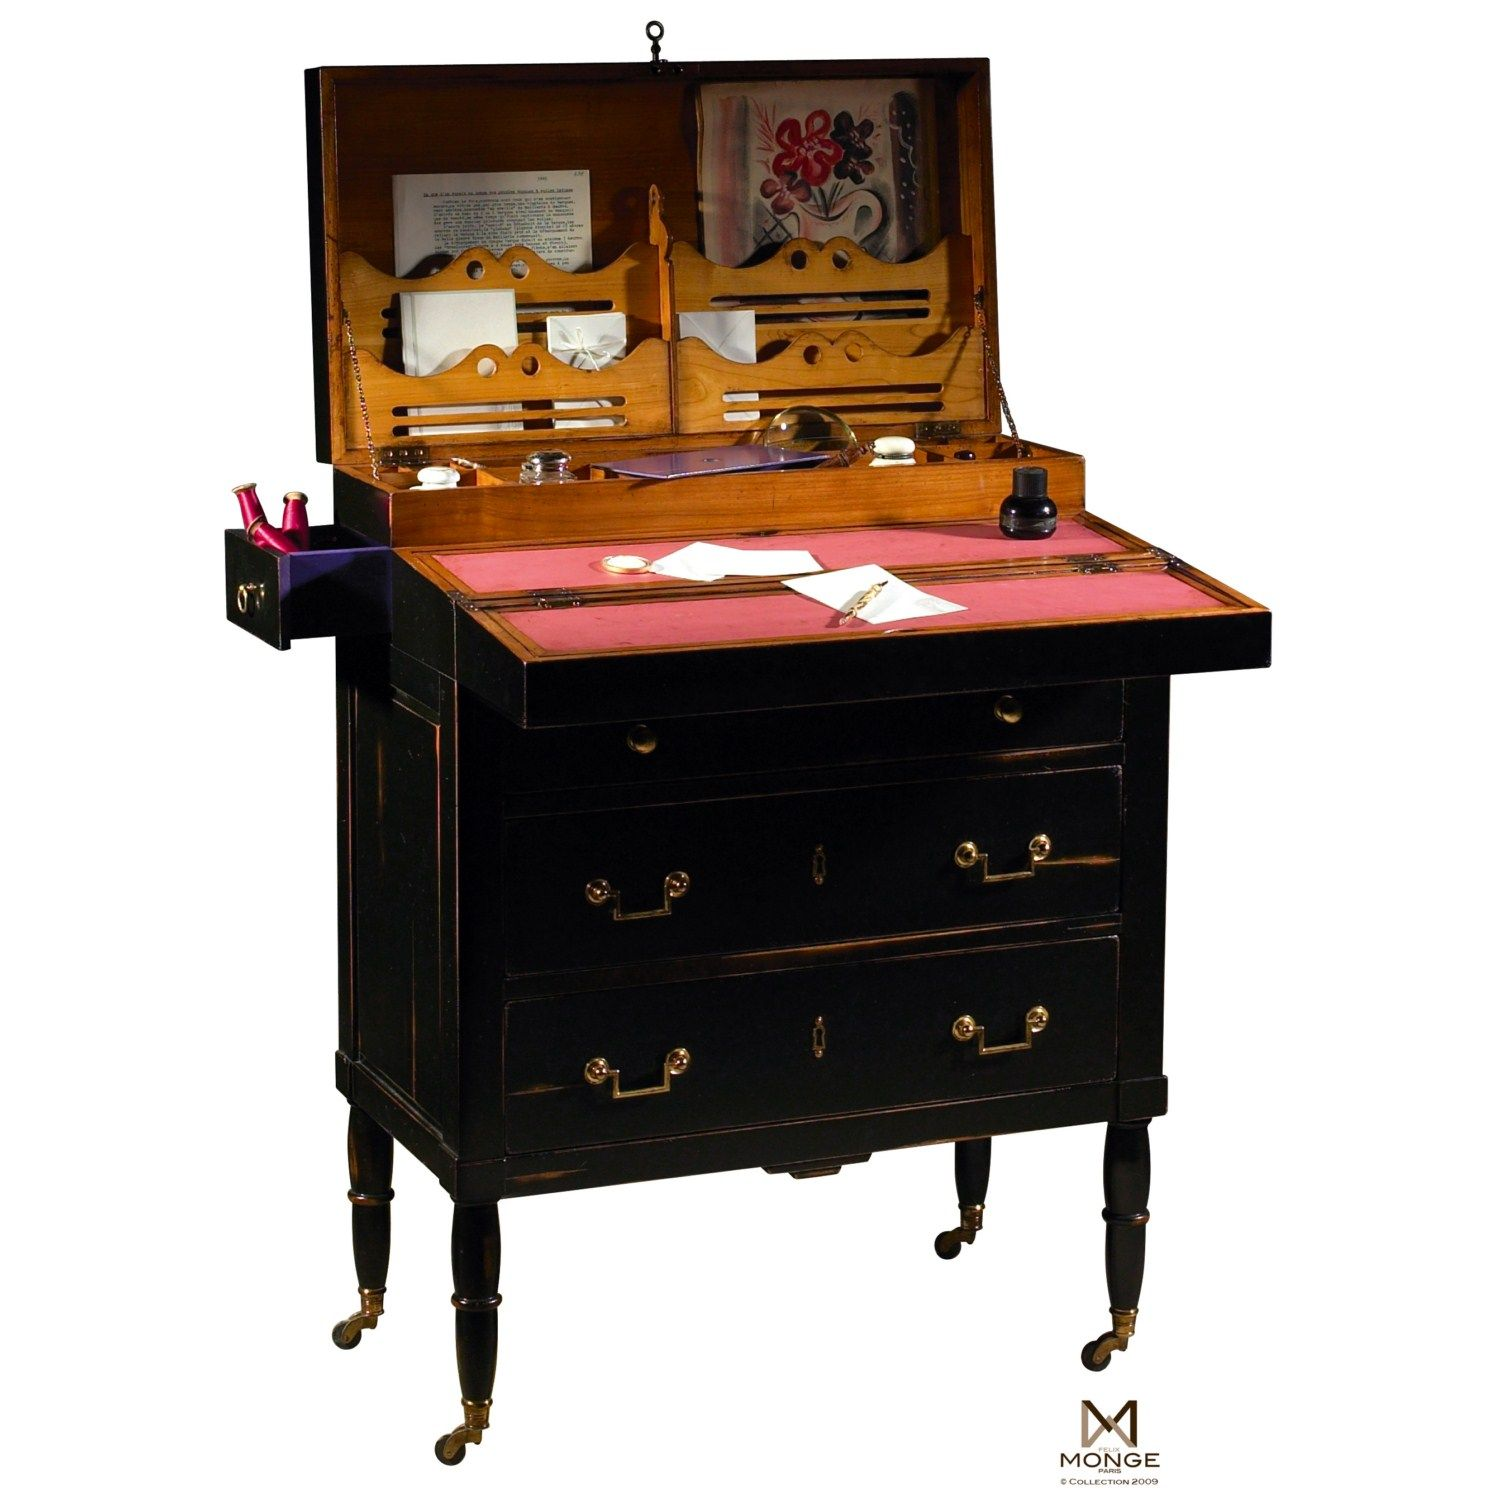 commode secr taire billet doux felix monge maison du meuble vente en ligne de meubles et. Black Bedroom Furniture Sets. Home Design Ideas